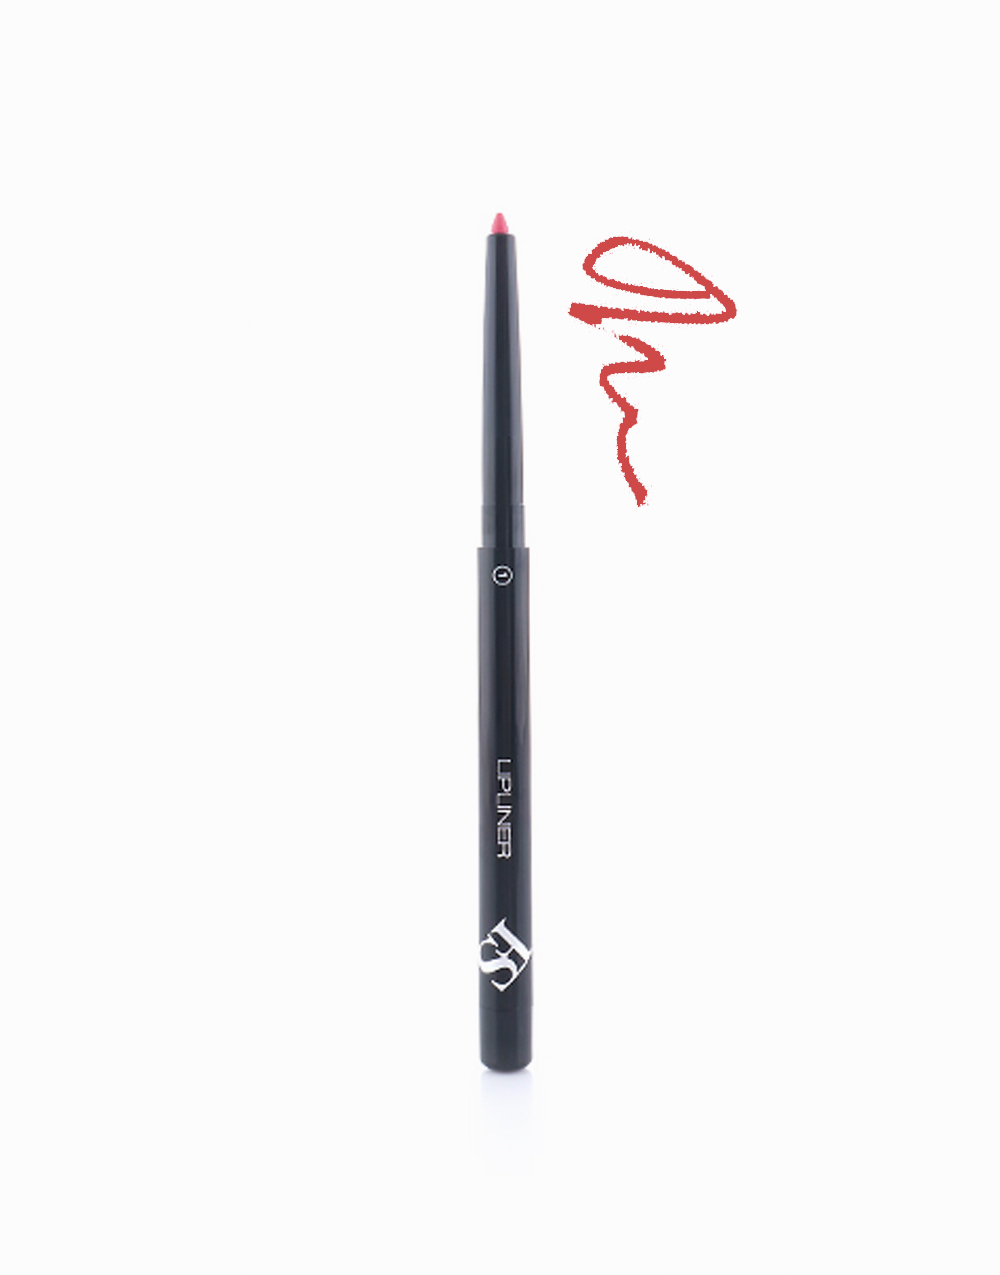 Lipliner by FS Features & Shades   01